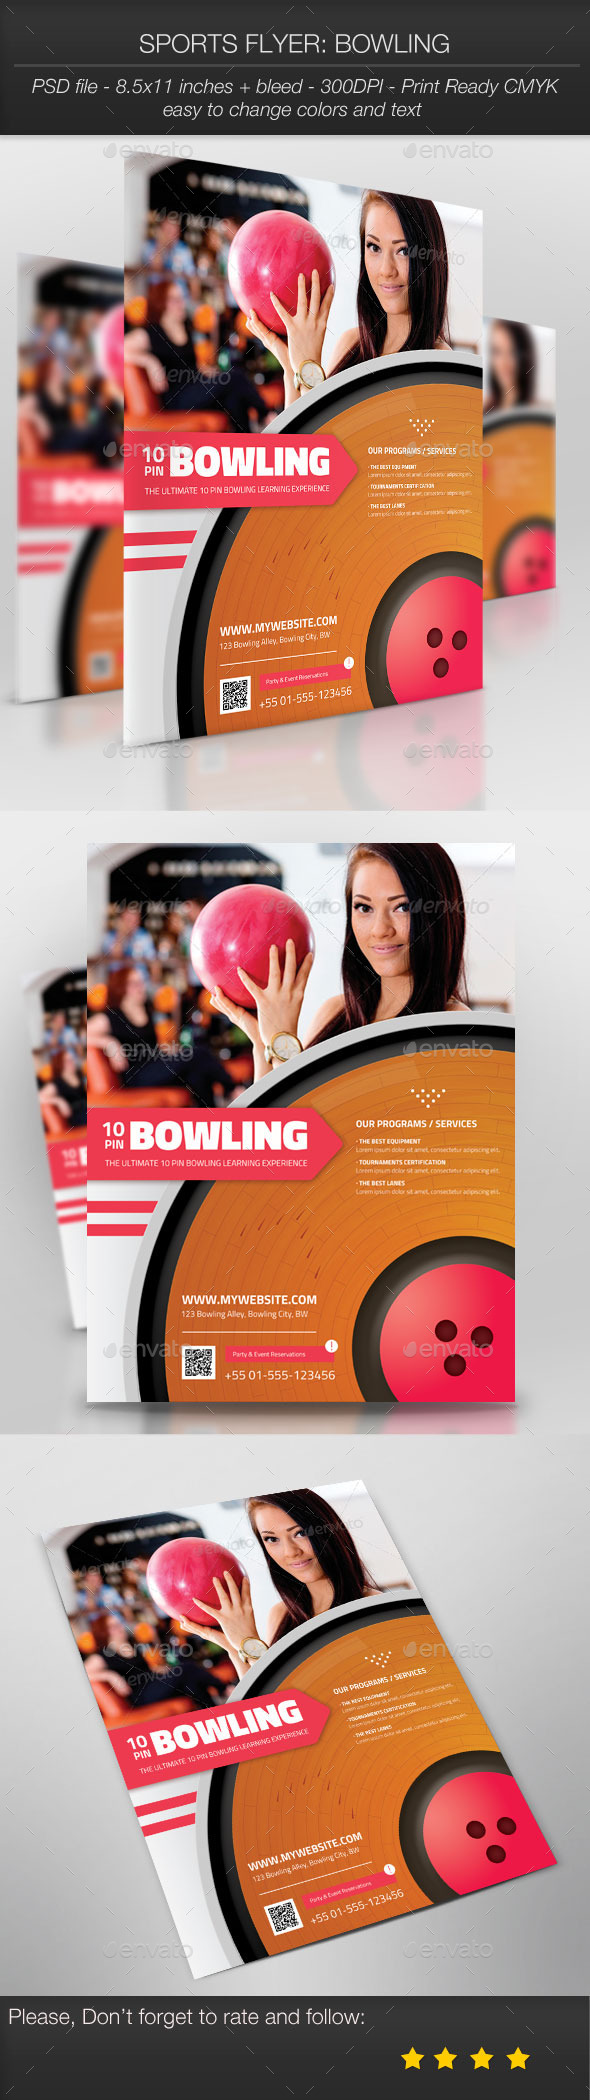 GraphicRiver Sports Flyer Bowling 10101020